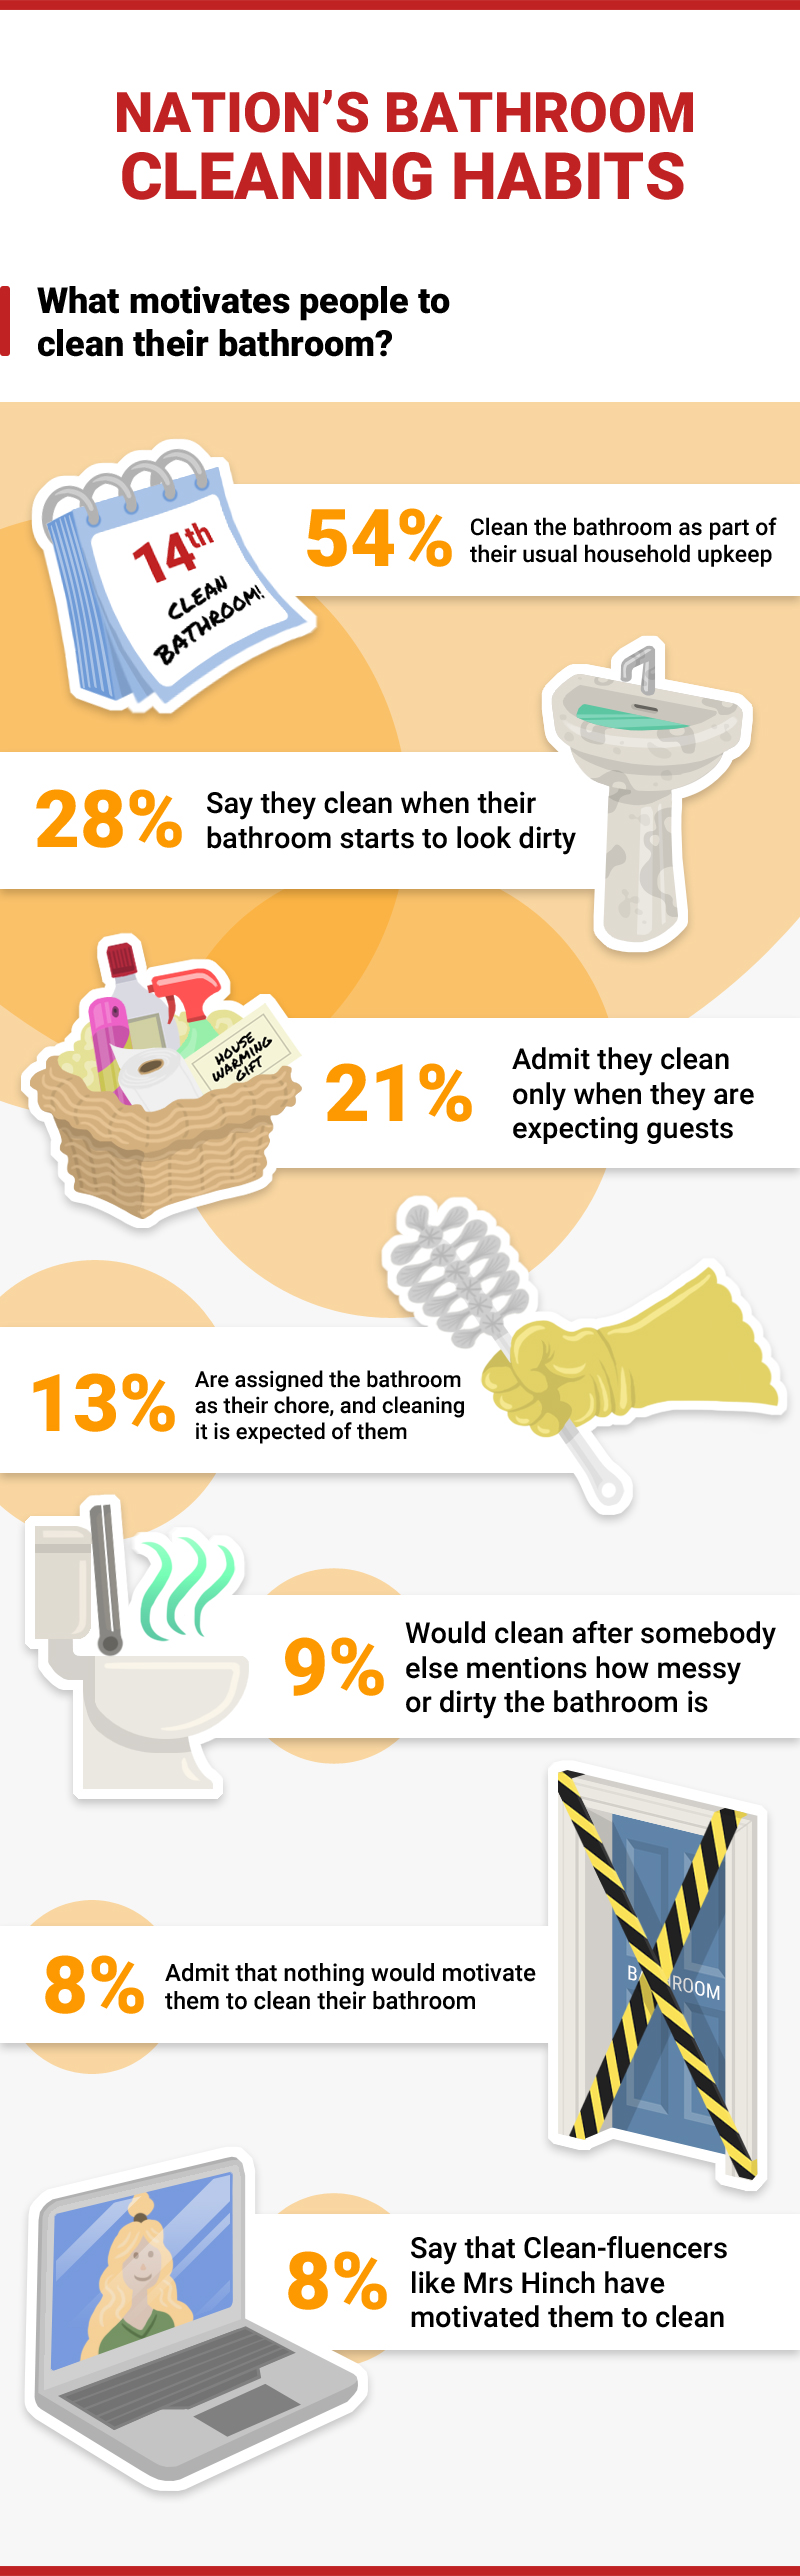 Infographic showing what motivates people to clean their bathroom